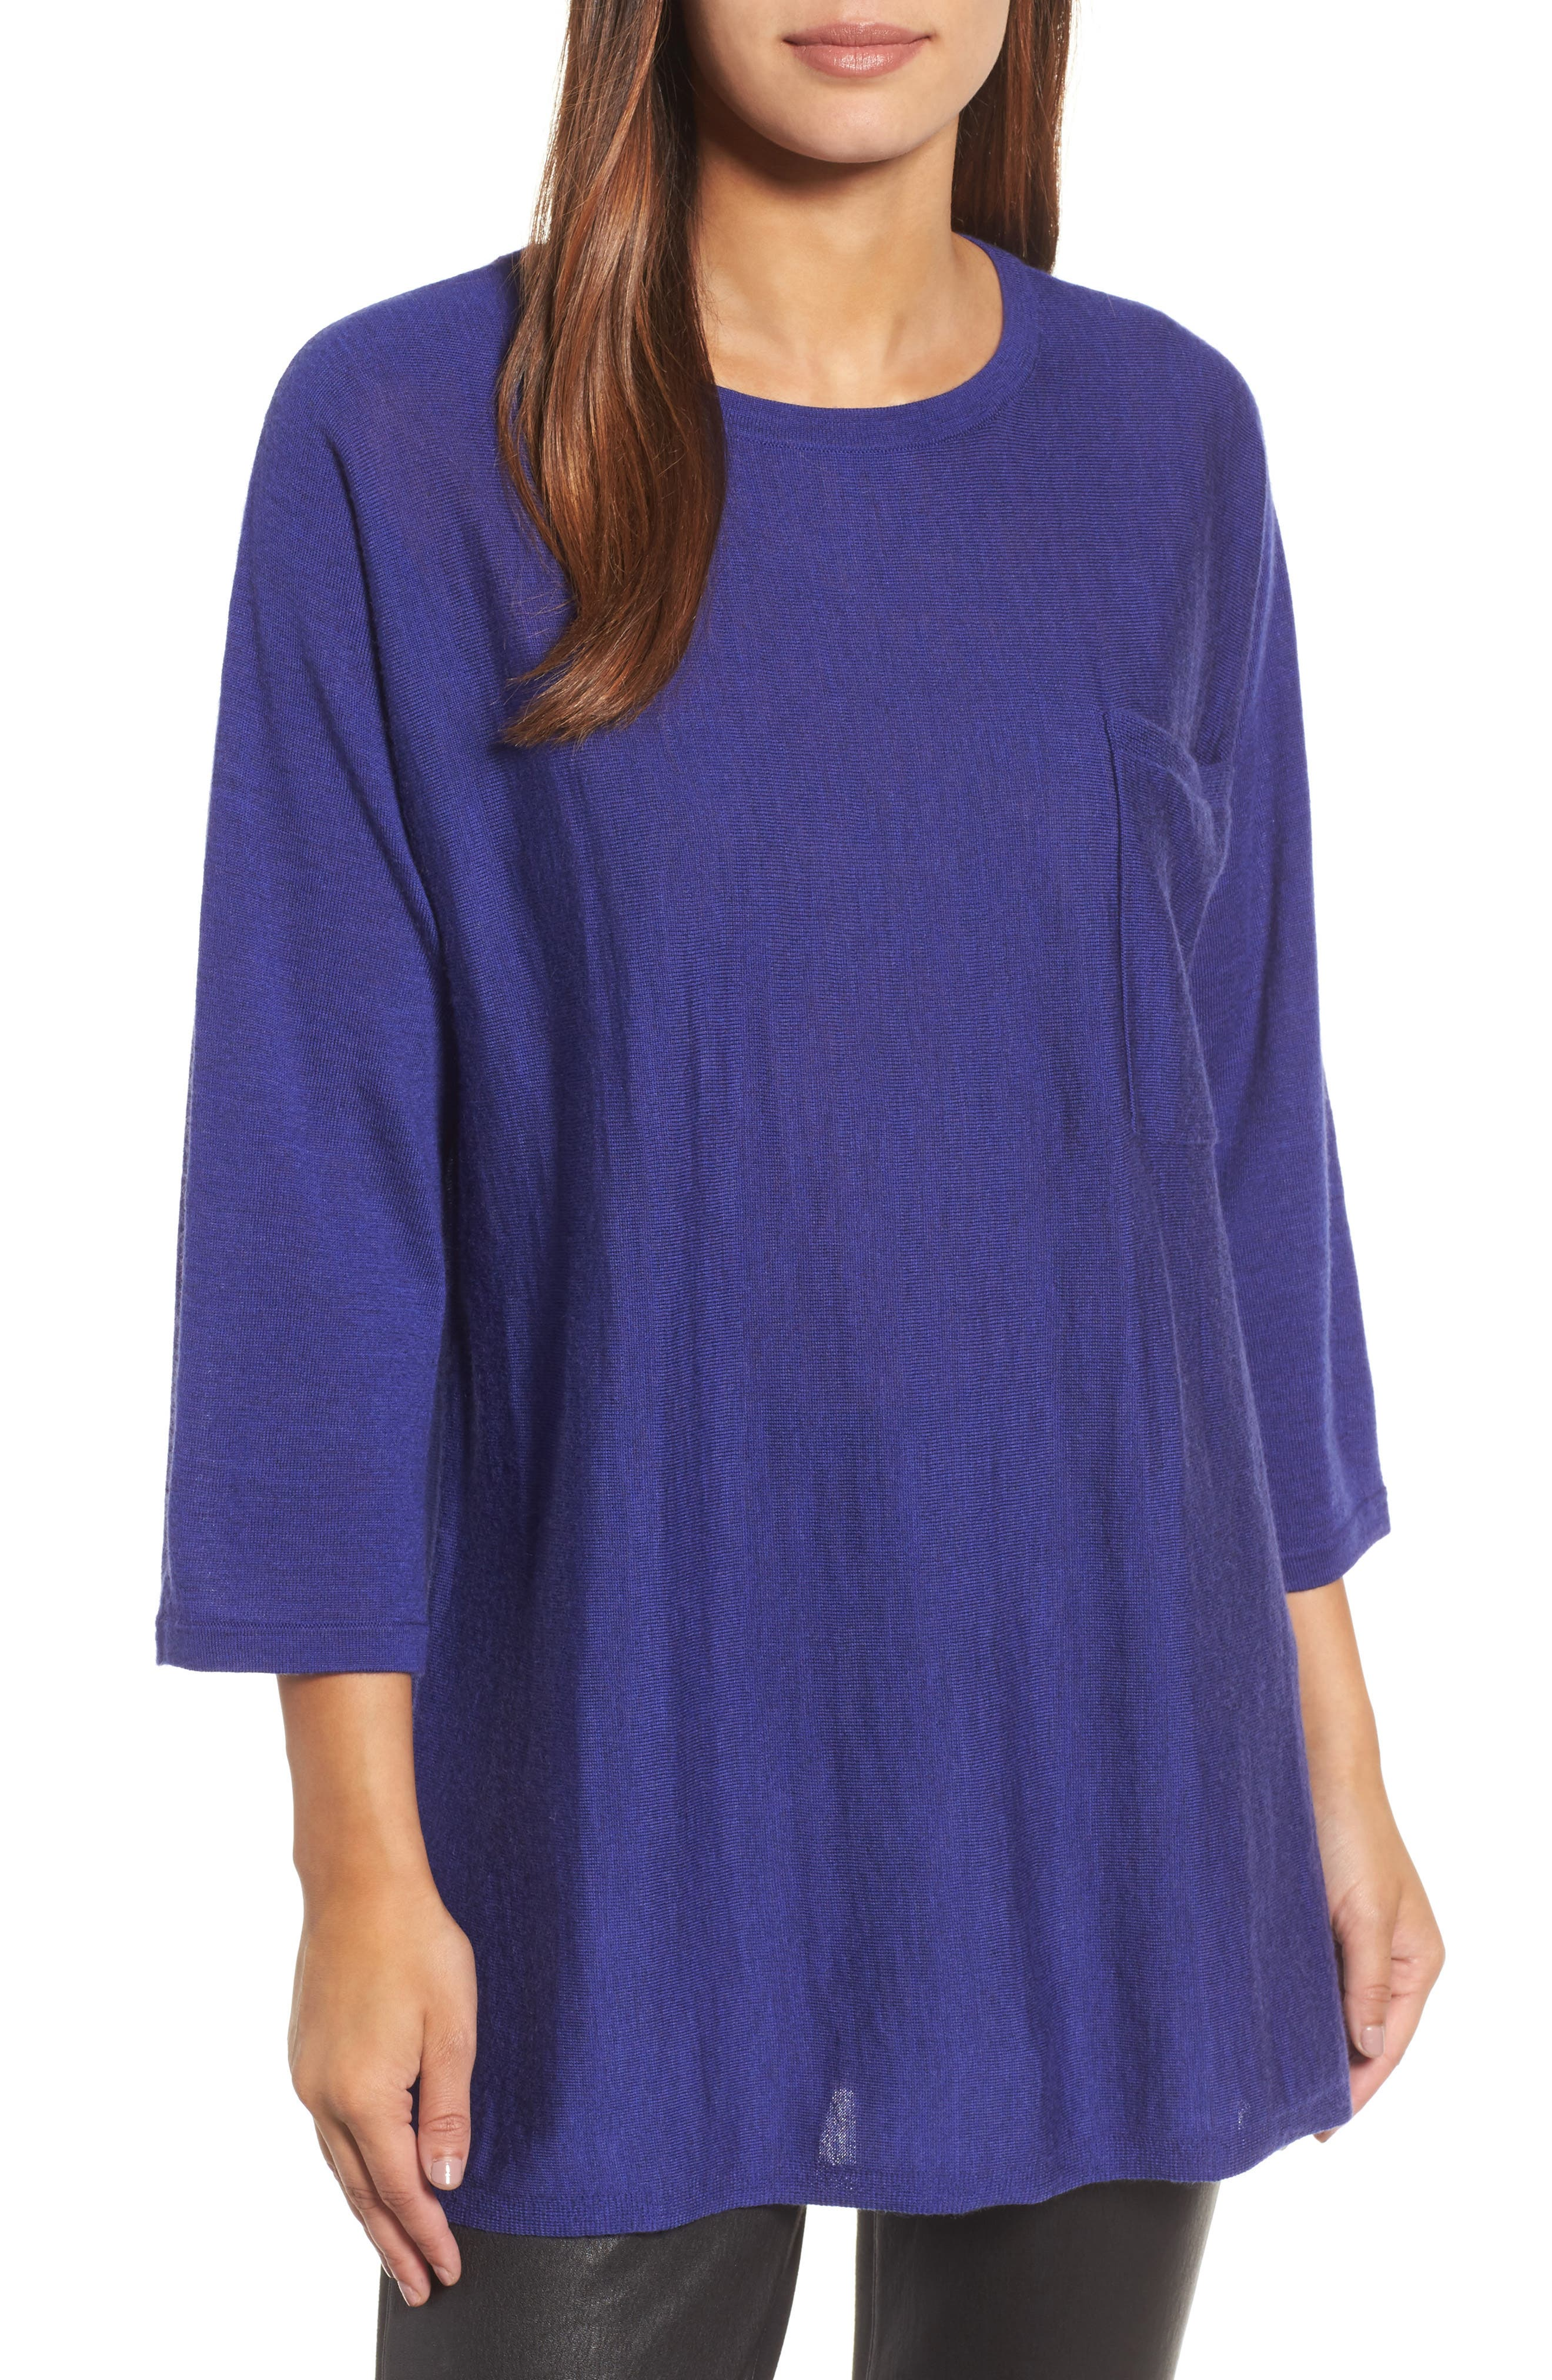 Alternate Image 1 Selected - Eileen Fisher Lightweight Merino Wool Sweater